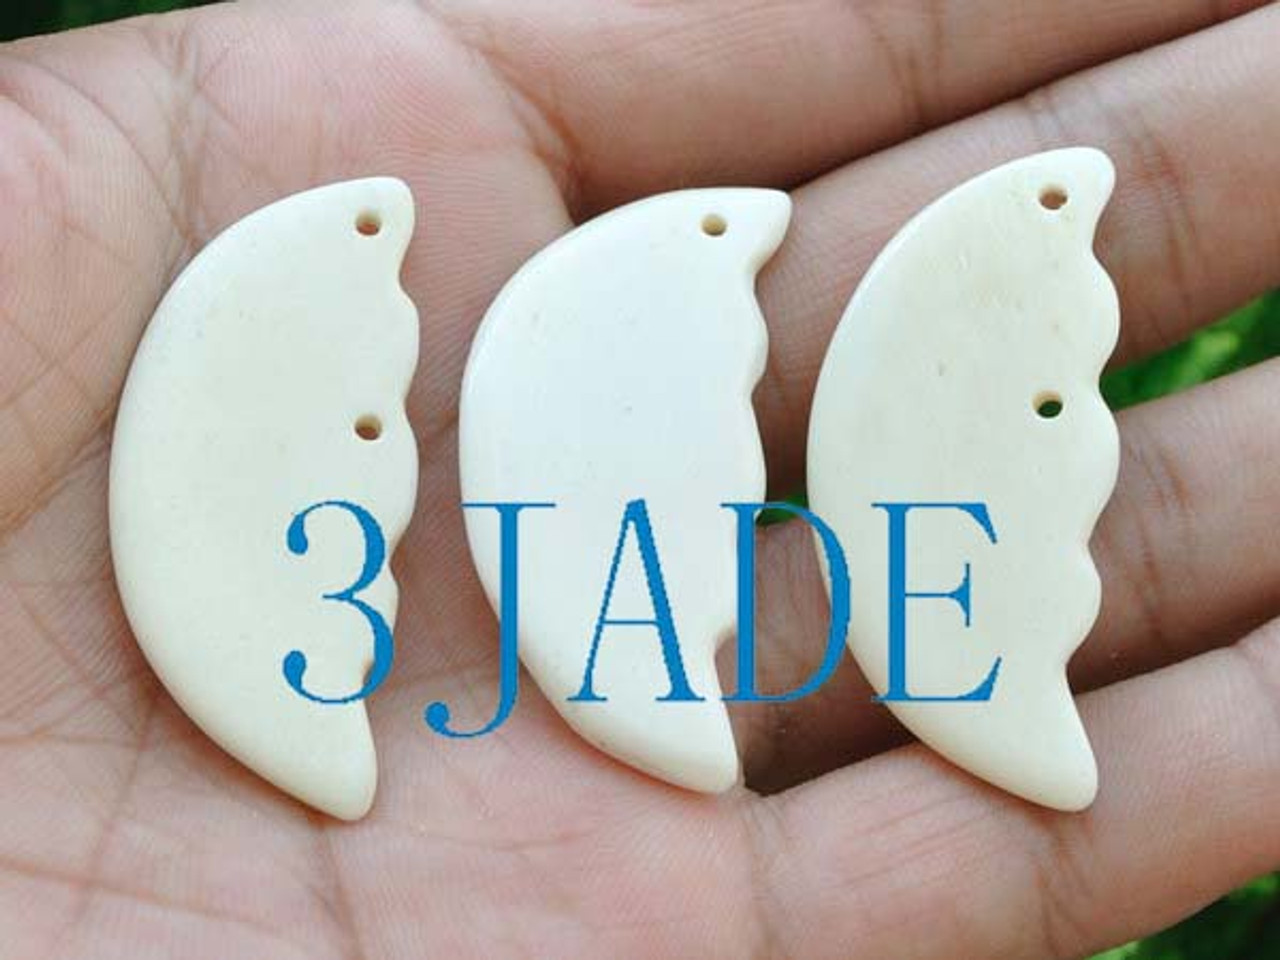 3pcs Hand Carved Nz Maori Style Bone Carving Blessing Pendant Necklace G029135 3jade Wholesale Of Jade Carvings Jewelry Collectables Prayer Beads